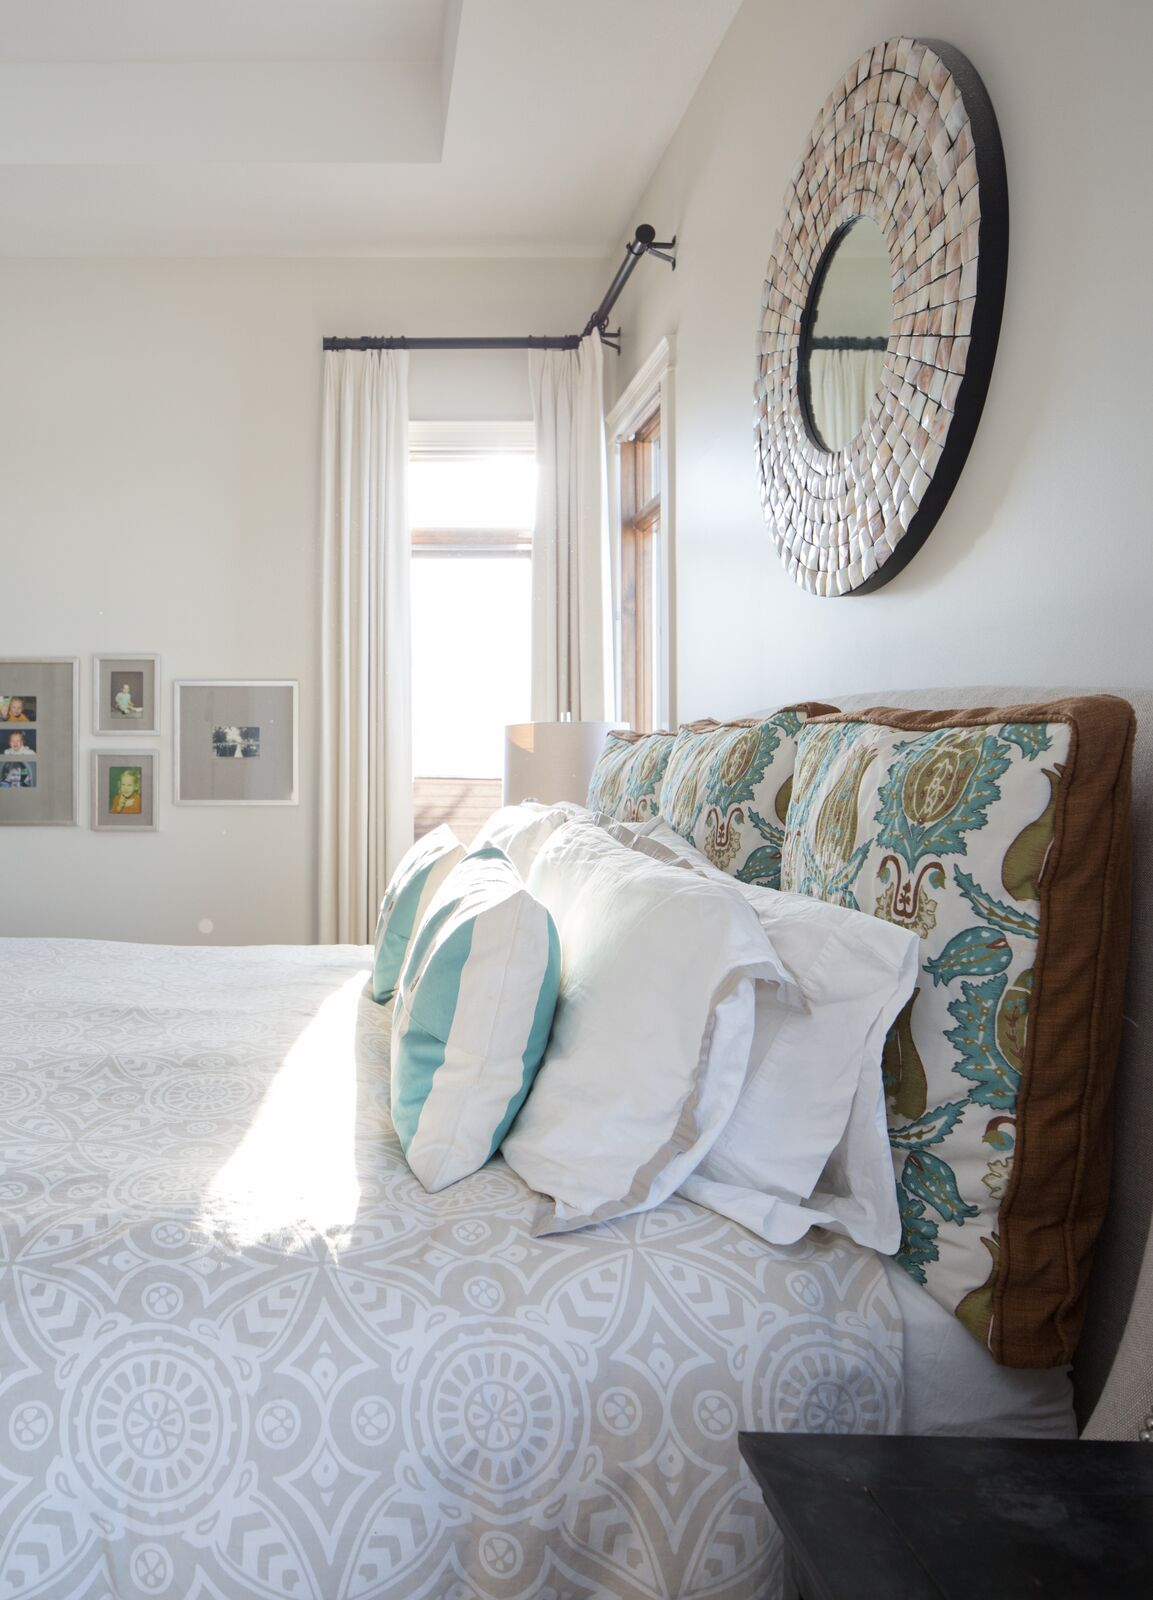 classic fresh bedroom teal, beige, white, brown, tile mosaic mirror white drapery Calgary interior design studio LeAnne Bunnell